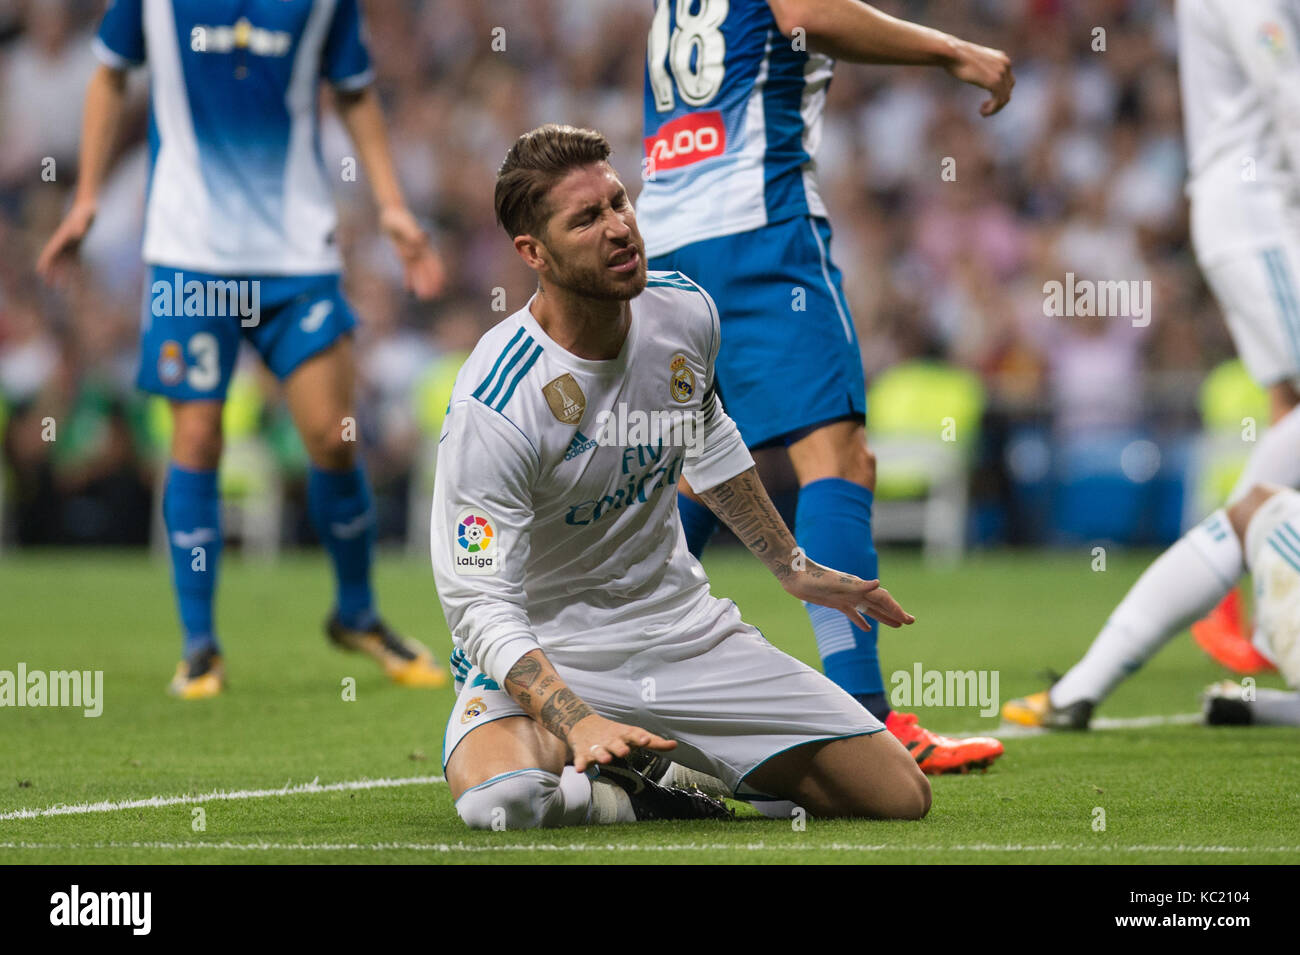 madrid spain october 1 2017 sergio ramos real madrid s player la liga between real madrid vs espanyol at the santiago bernabeu stadium in madrid spain